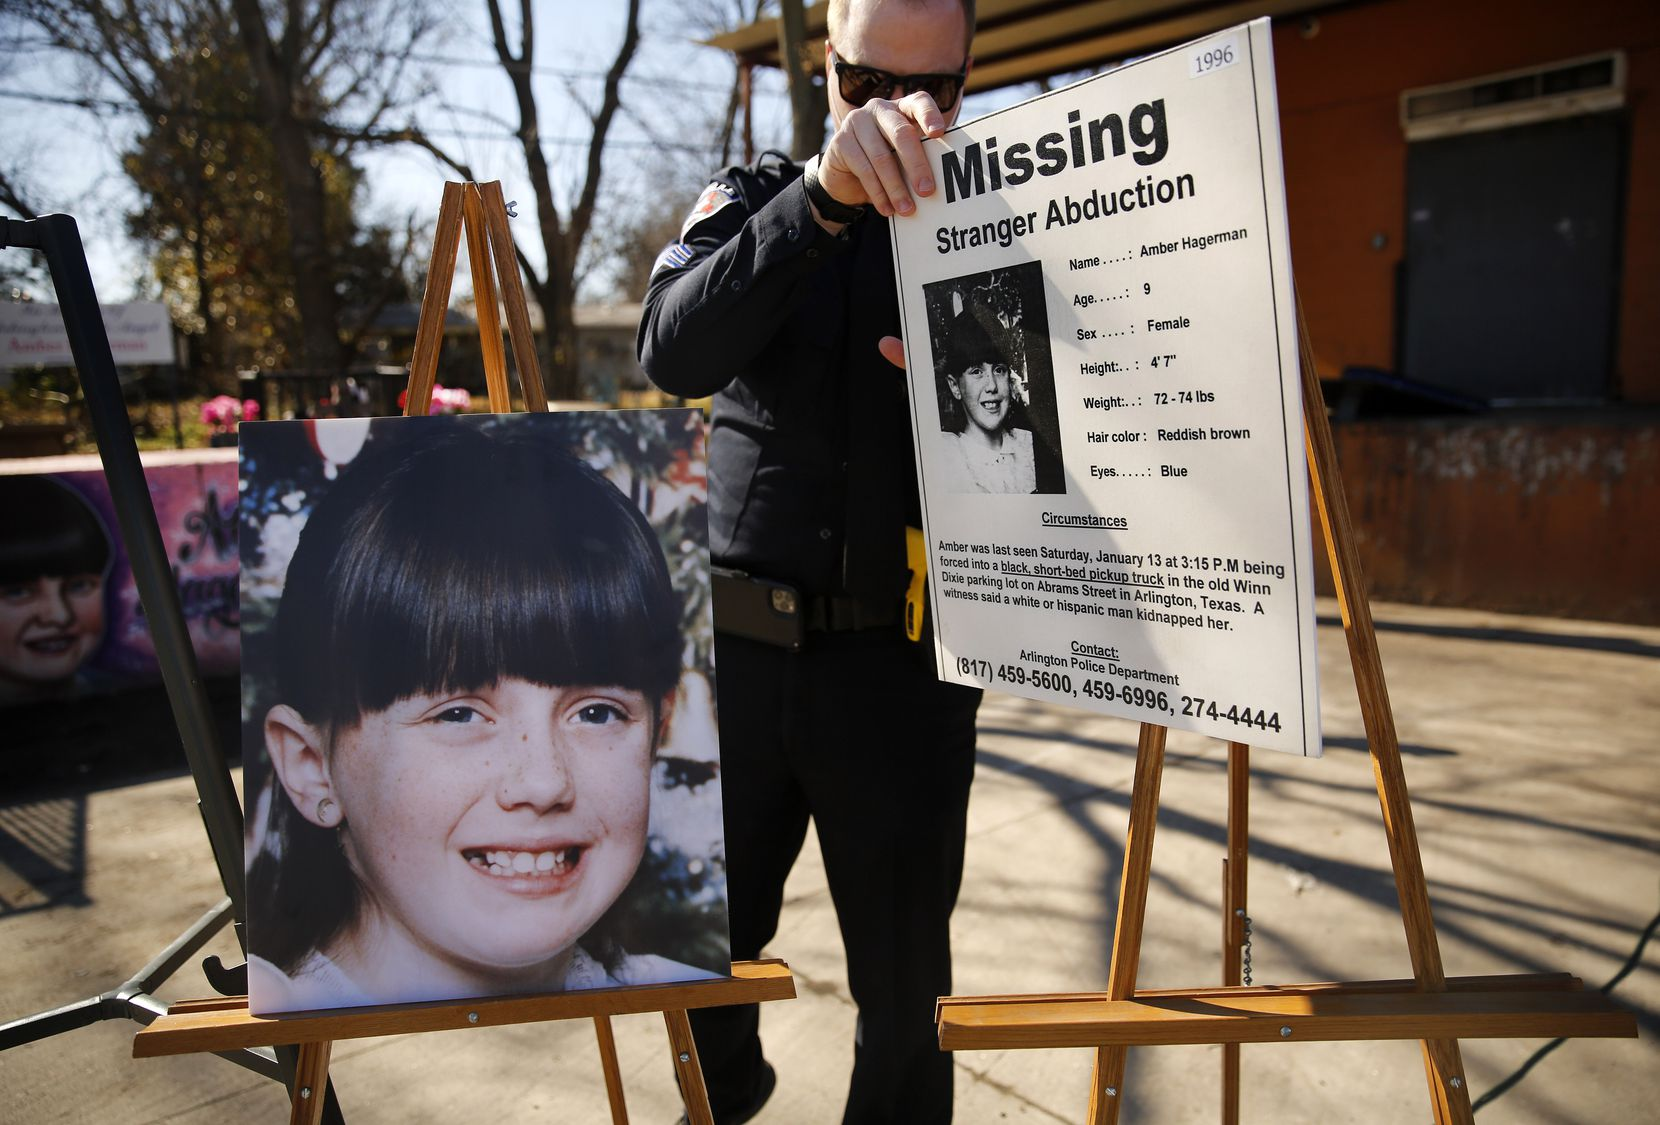 Arlington Police Sgt. Michael Chitty removes a the original 'Missing' alert and a photo of Amber Hagerman following a press conference at the abduction site on Abrams St. in E. Arlington, Texas, Wednesday, January 13, 2021.